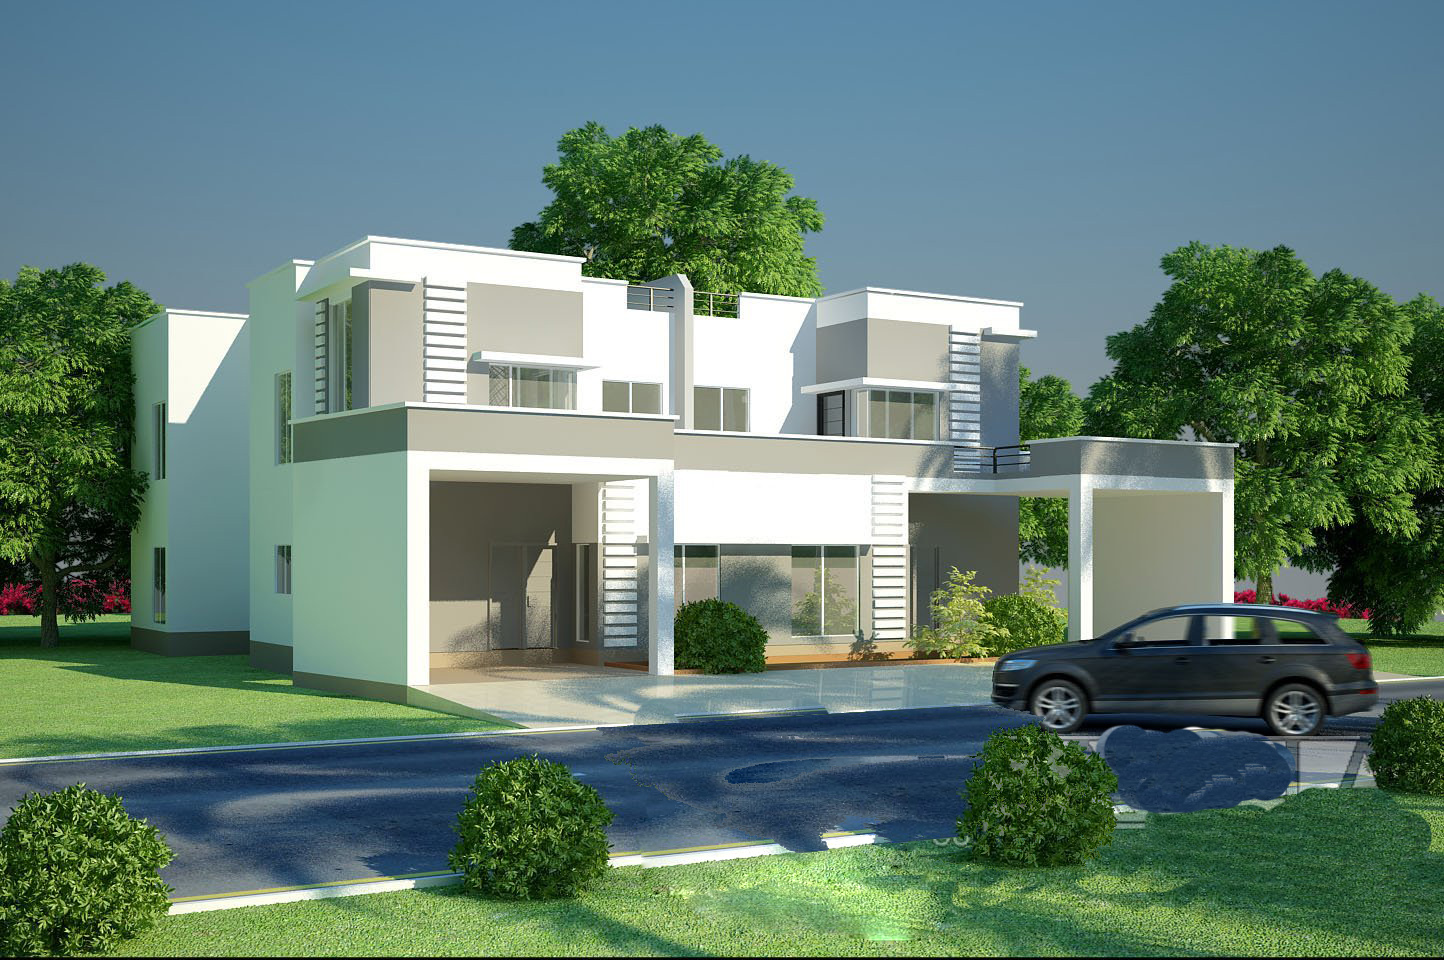 Front House Elevation - Modern Architecture Decorating Ideas Blog - Small Bungalow Classic Elevation